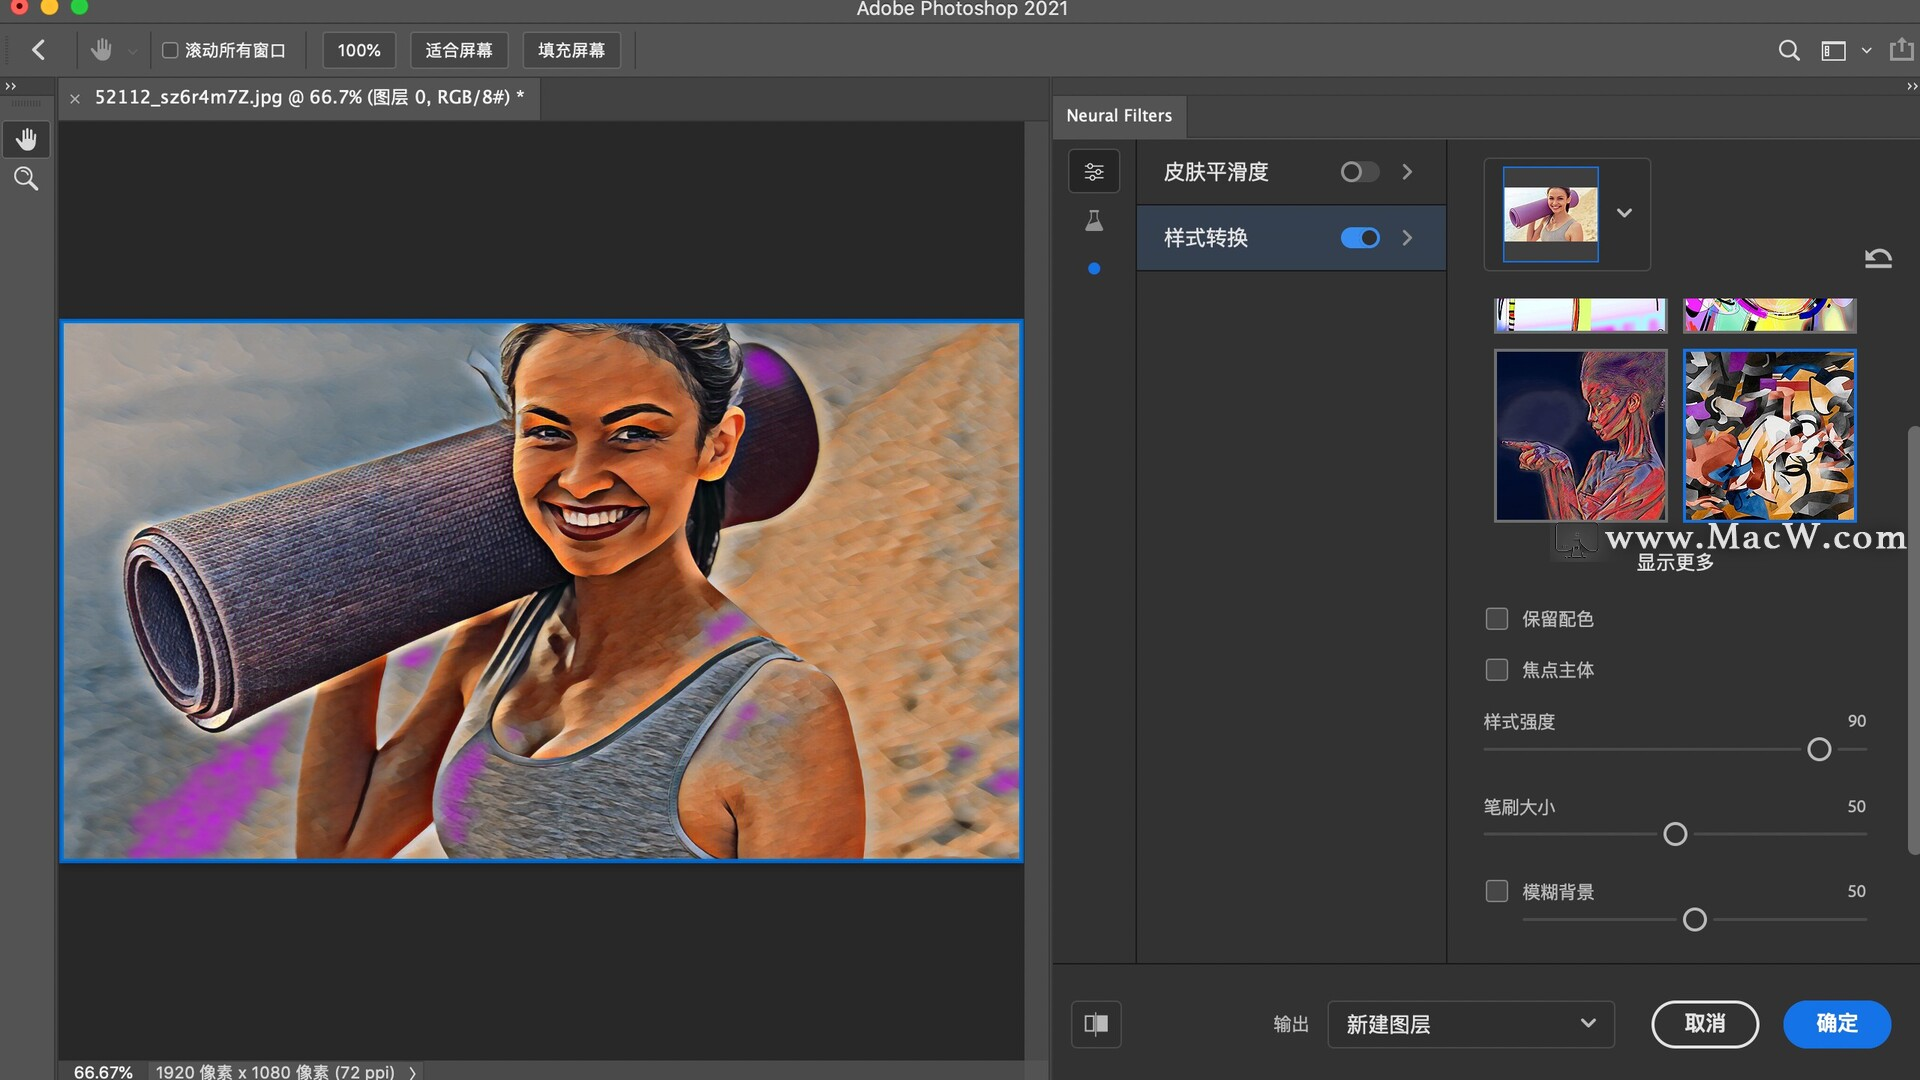 Neural Filters for Photoshop 2021(ps2021逆天滤镜库)